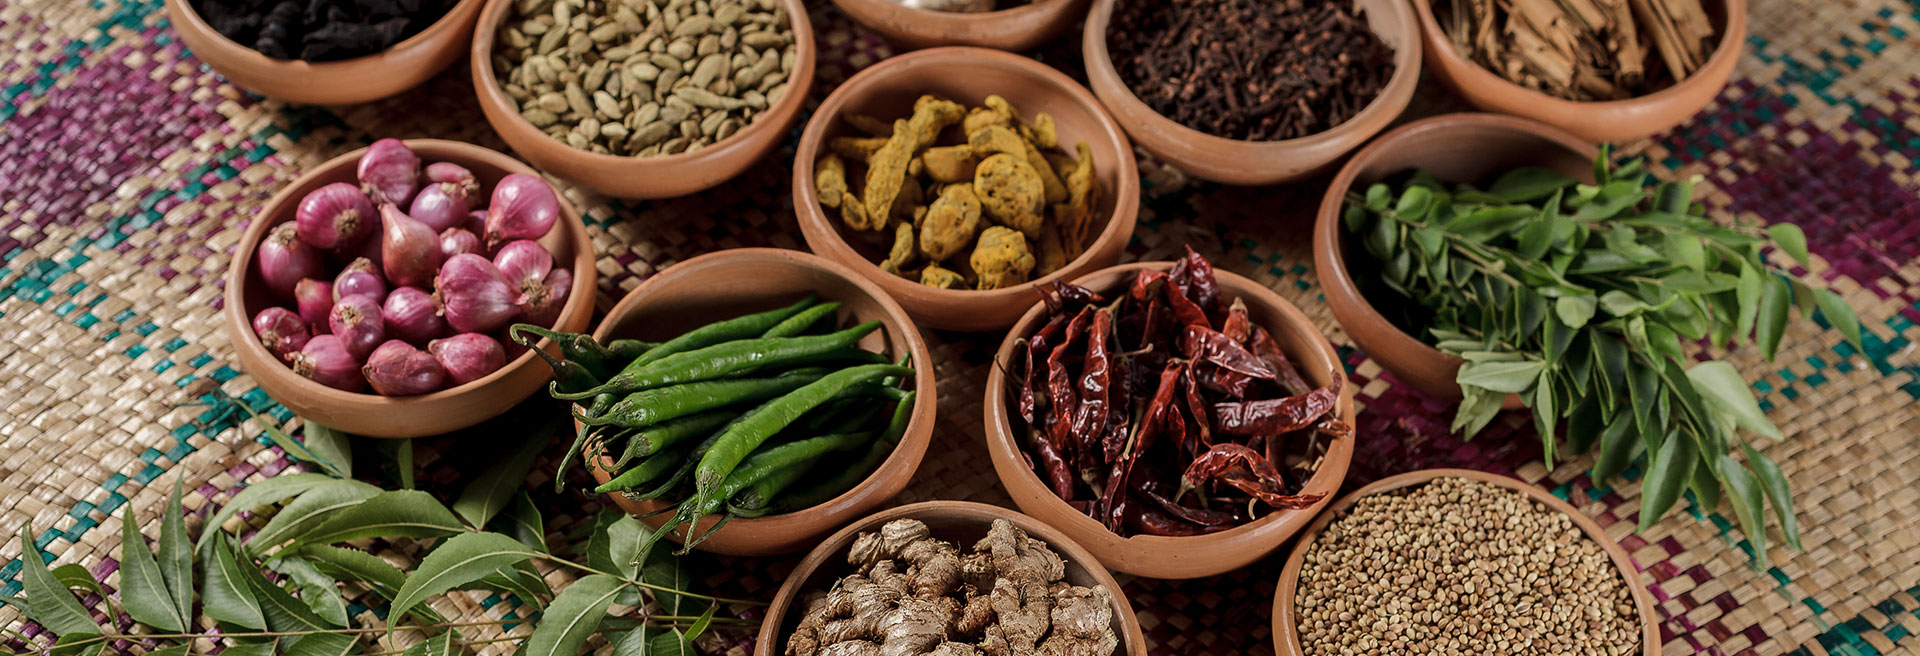 Variety Of Sri Lankan Spices And Herbs